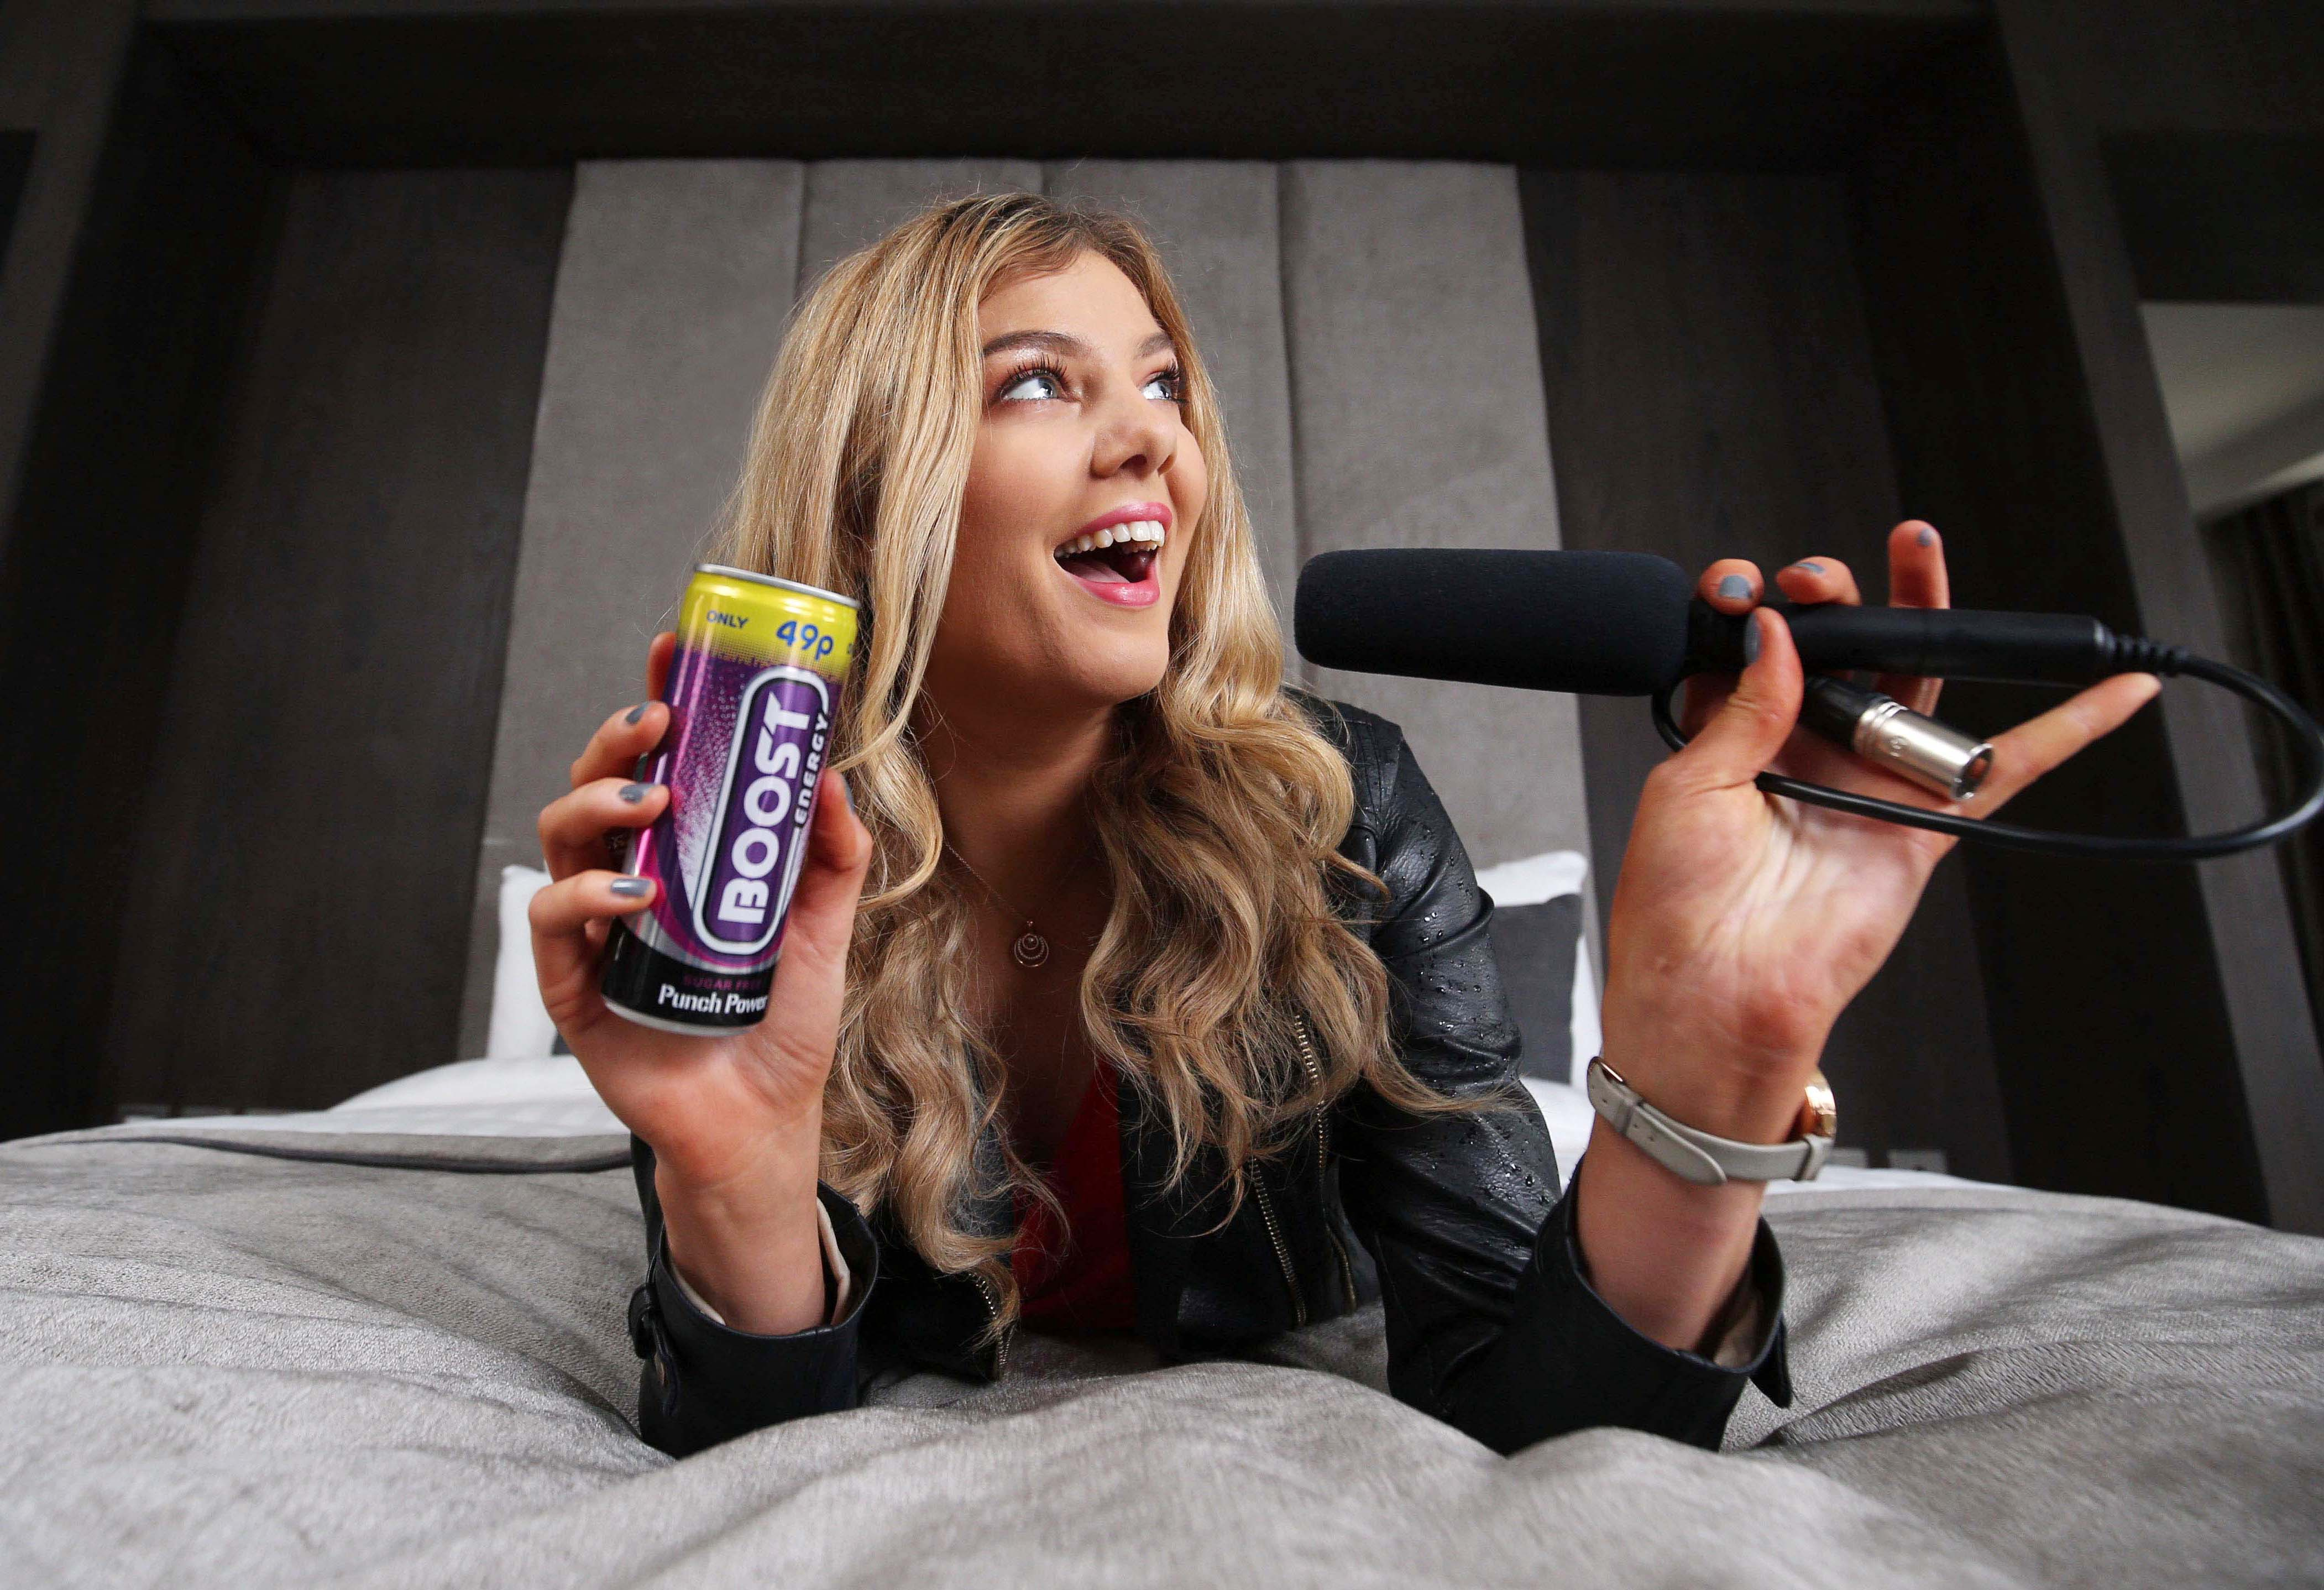 BOOST LAUNCHES NEW FLAVOUR WITH POWER SURVEY RESULTS